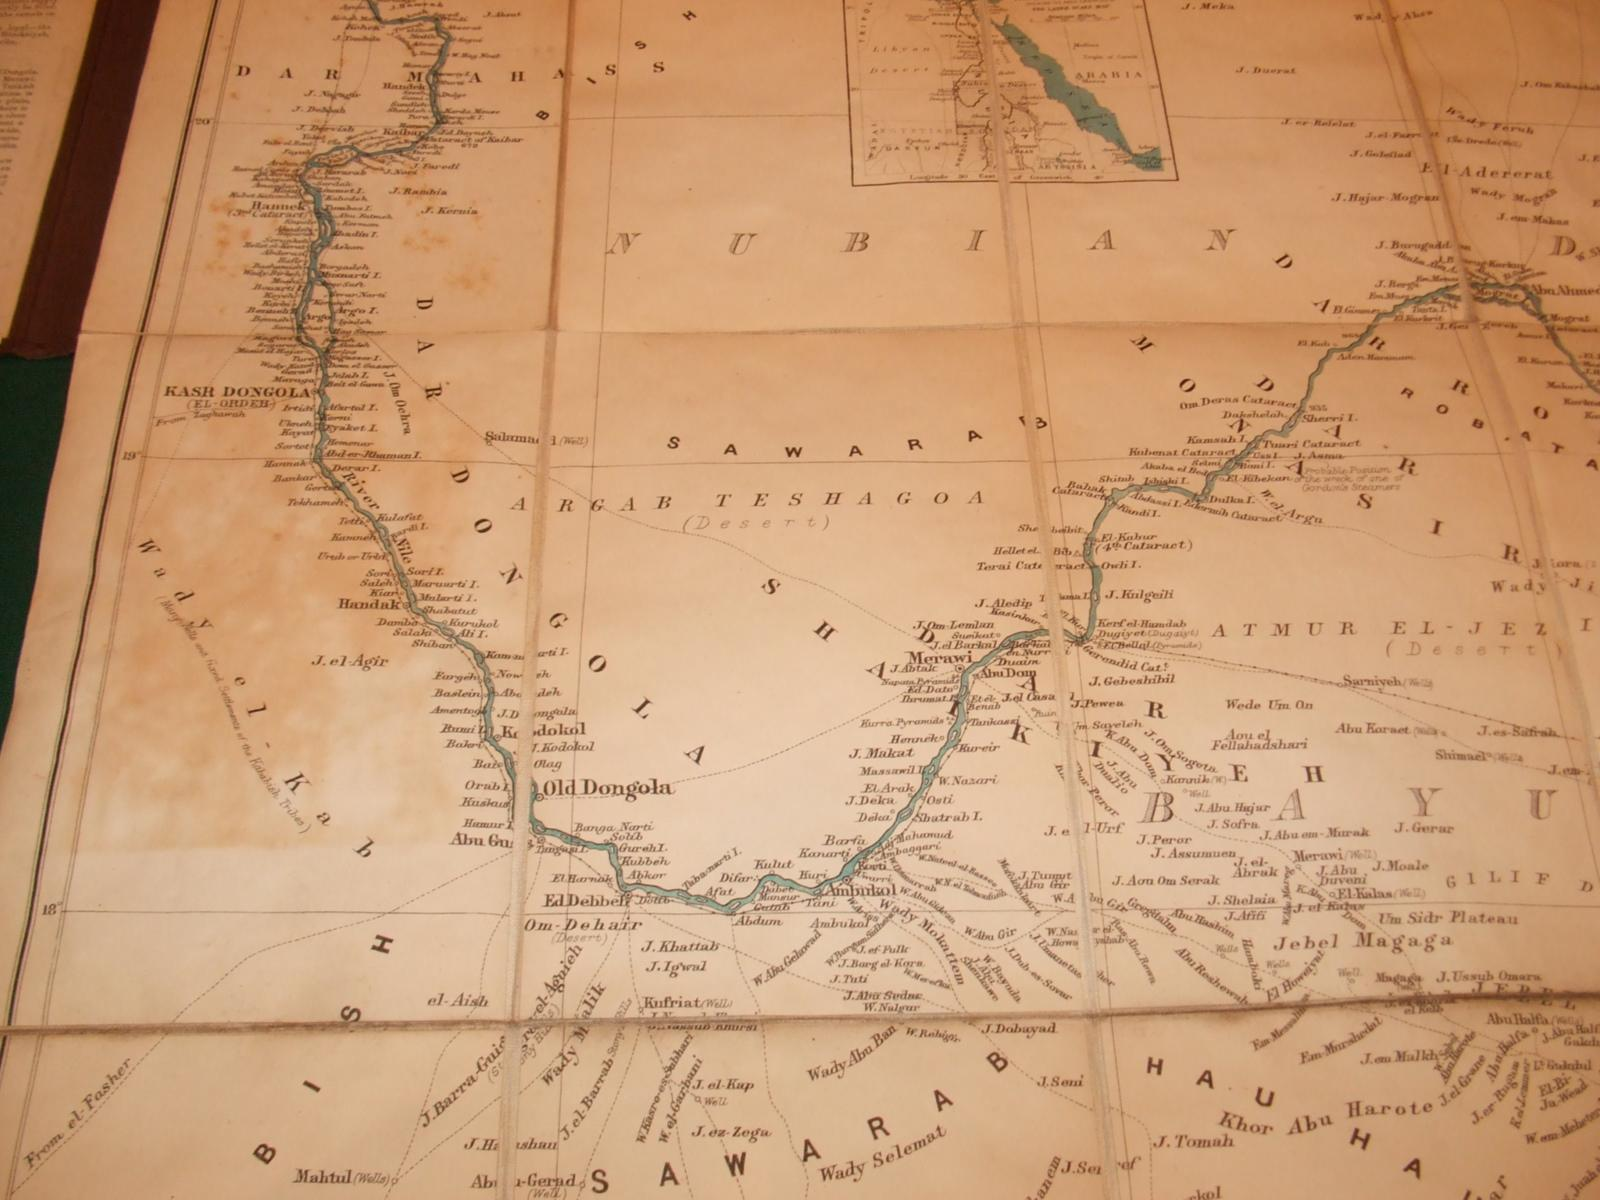 Large Scale Map of the Nile from Dongola to ... on map of elmwood, map of flossmoor, map of dalzell, map of wadi halfa, map of granite city, map of zinder, map of rumbek, map of farmer city, map of south darfur, map of kenema, map of faiyum, map of elburn, map of zeila, map of brownstown, map of kom ombo, map of arthur, map of dallas city, map of future city, map of giant city state park, map of rafah,